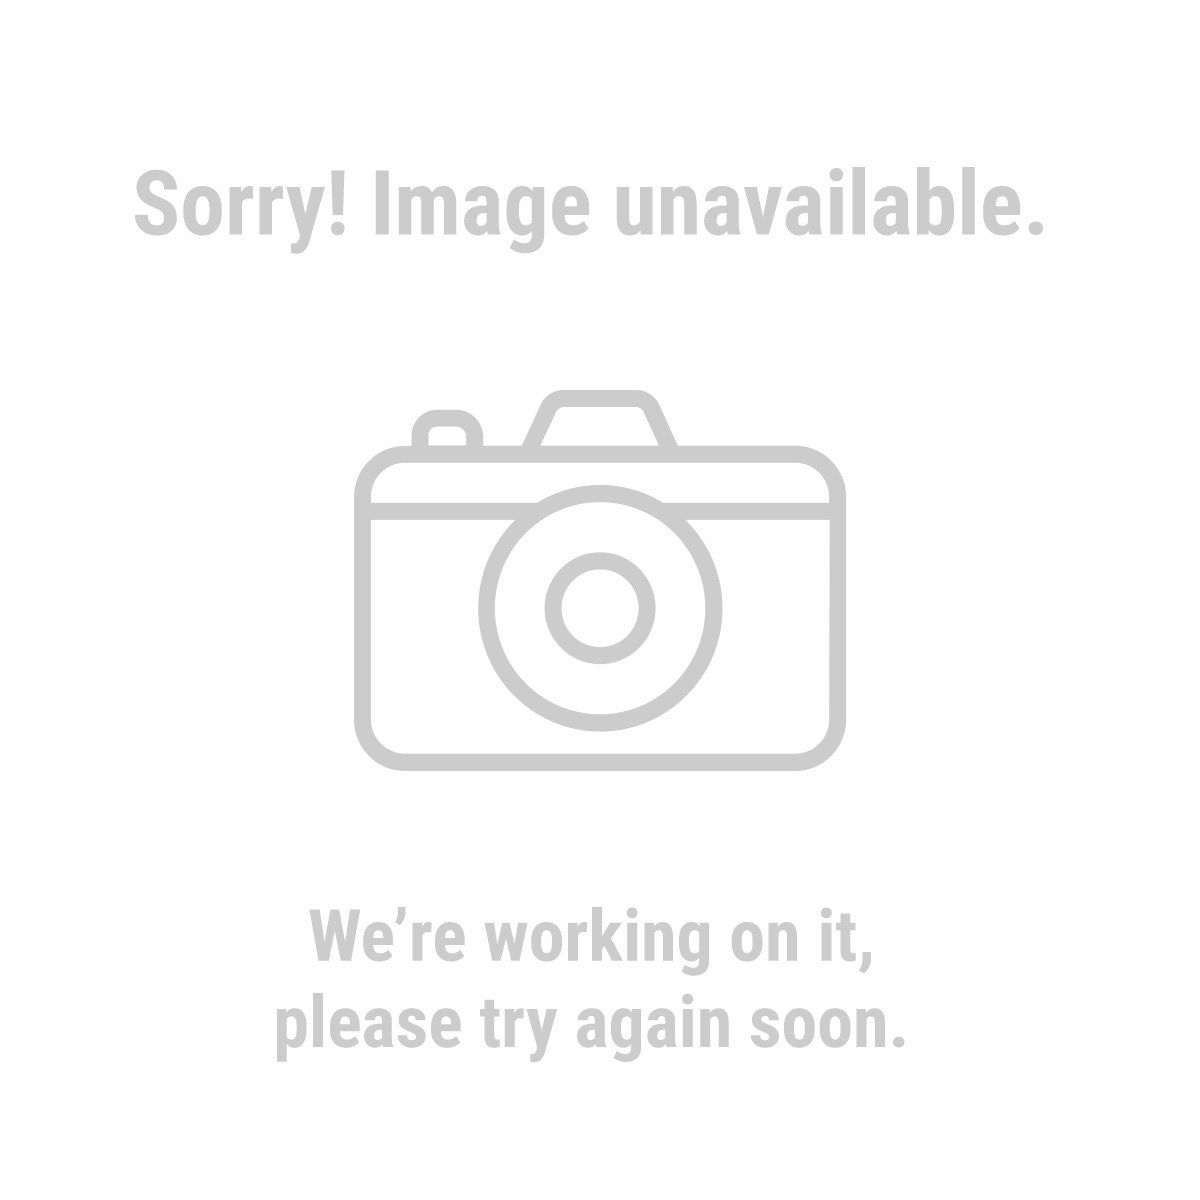 Western Safety 66841 Safety Glasses with LED Lights